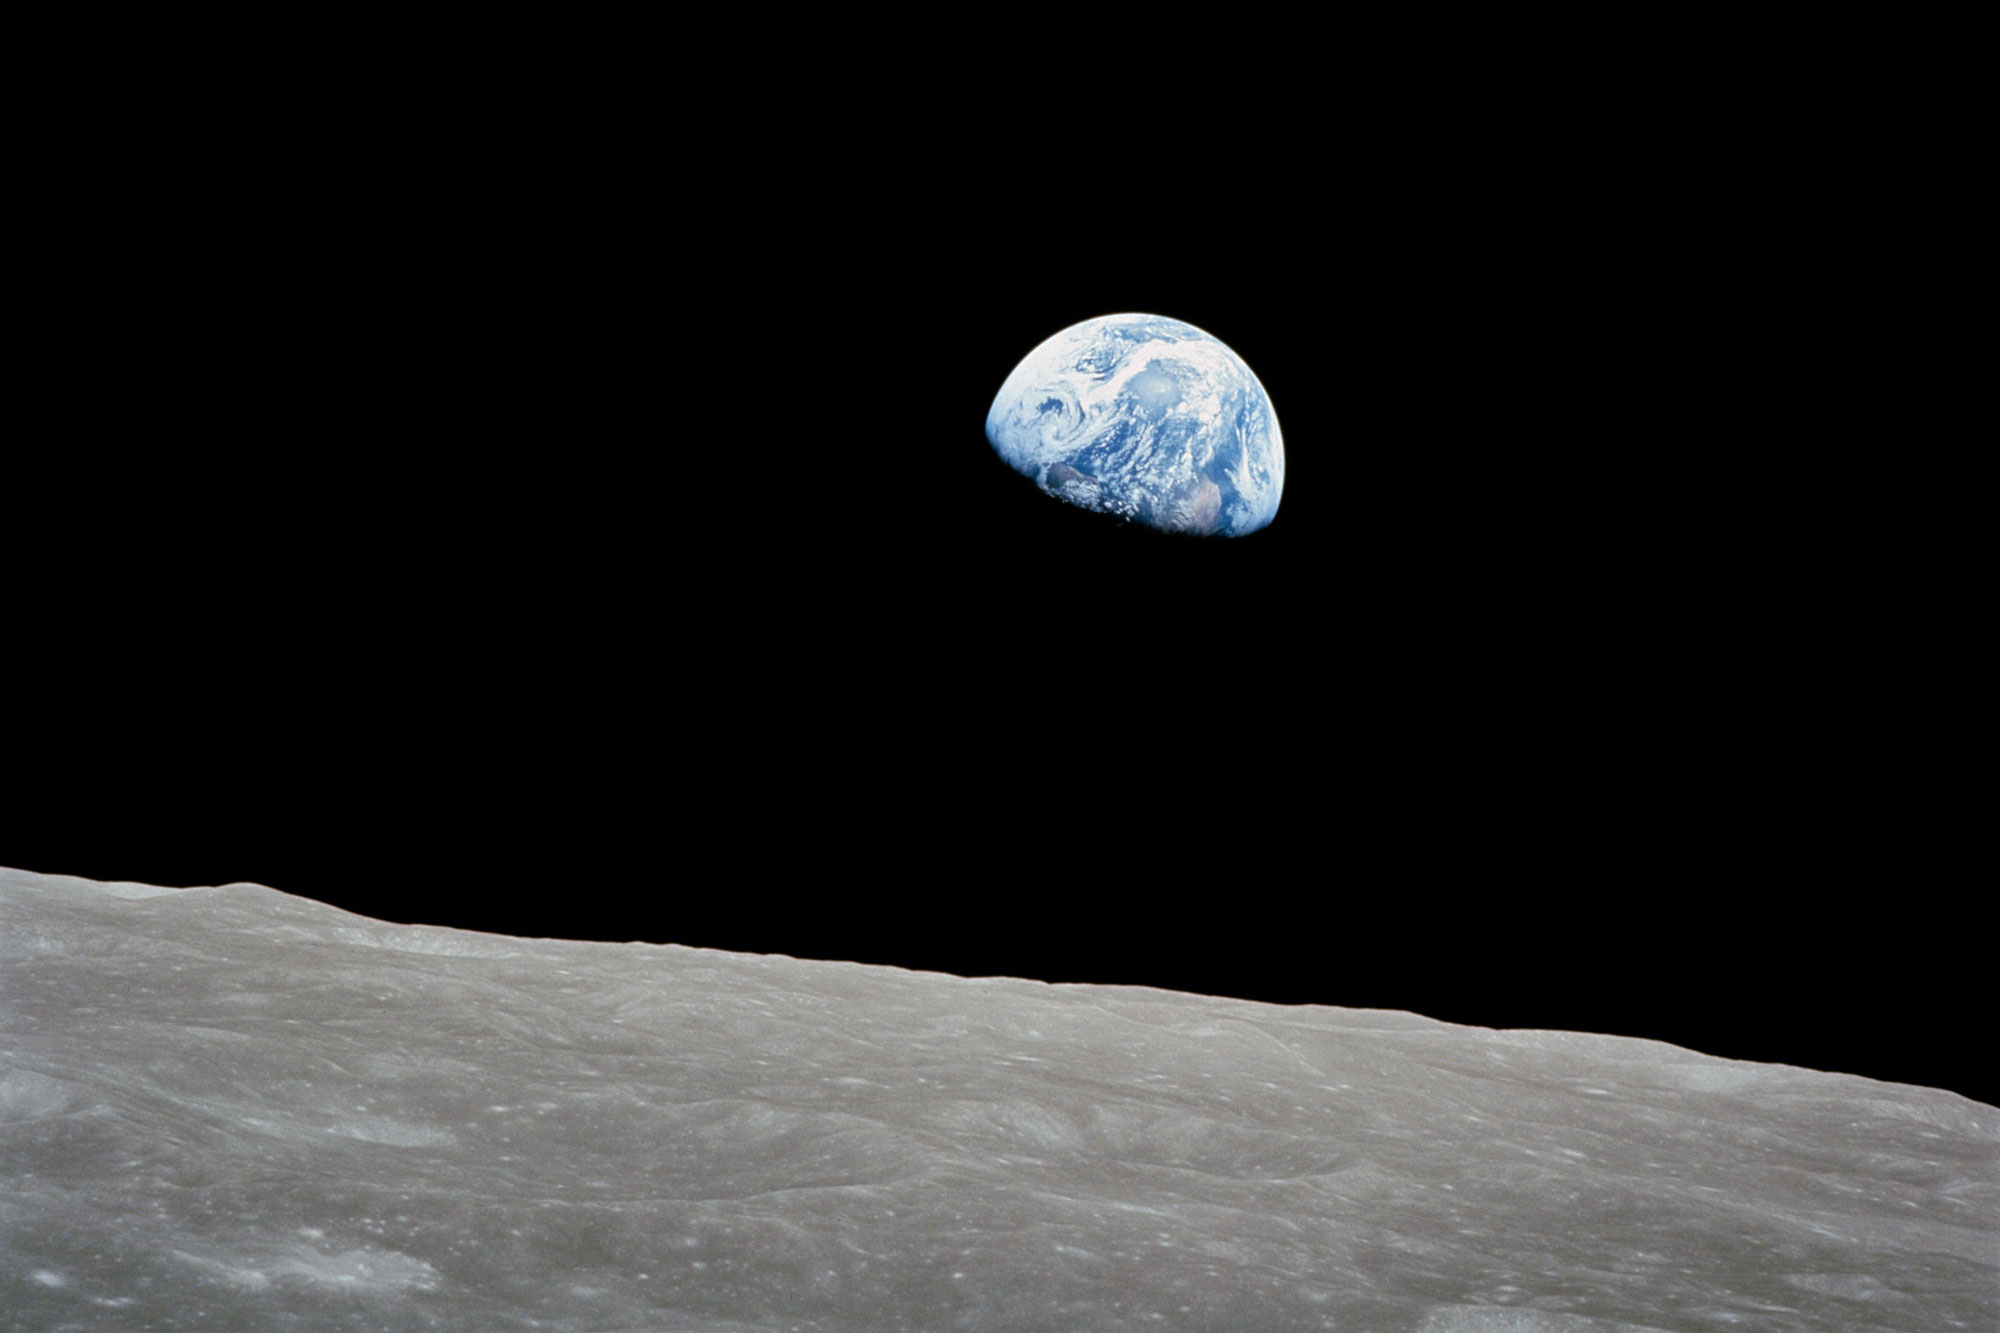 Photo of the Earth rising over the moon